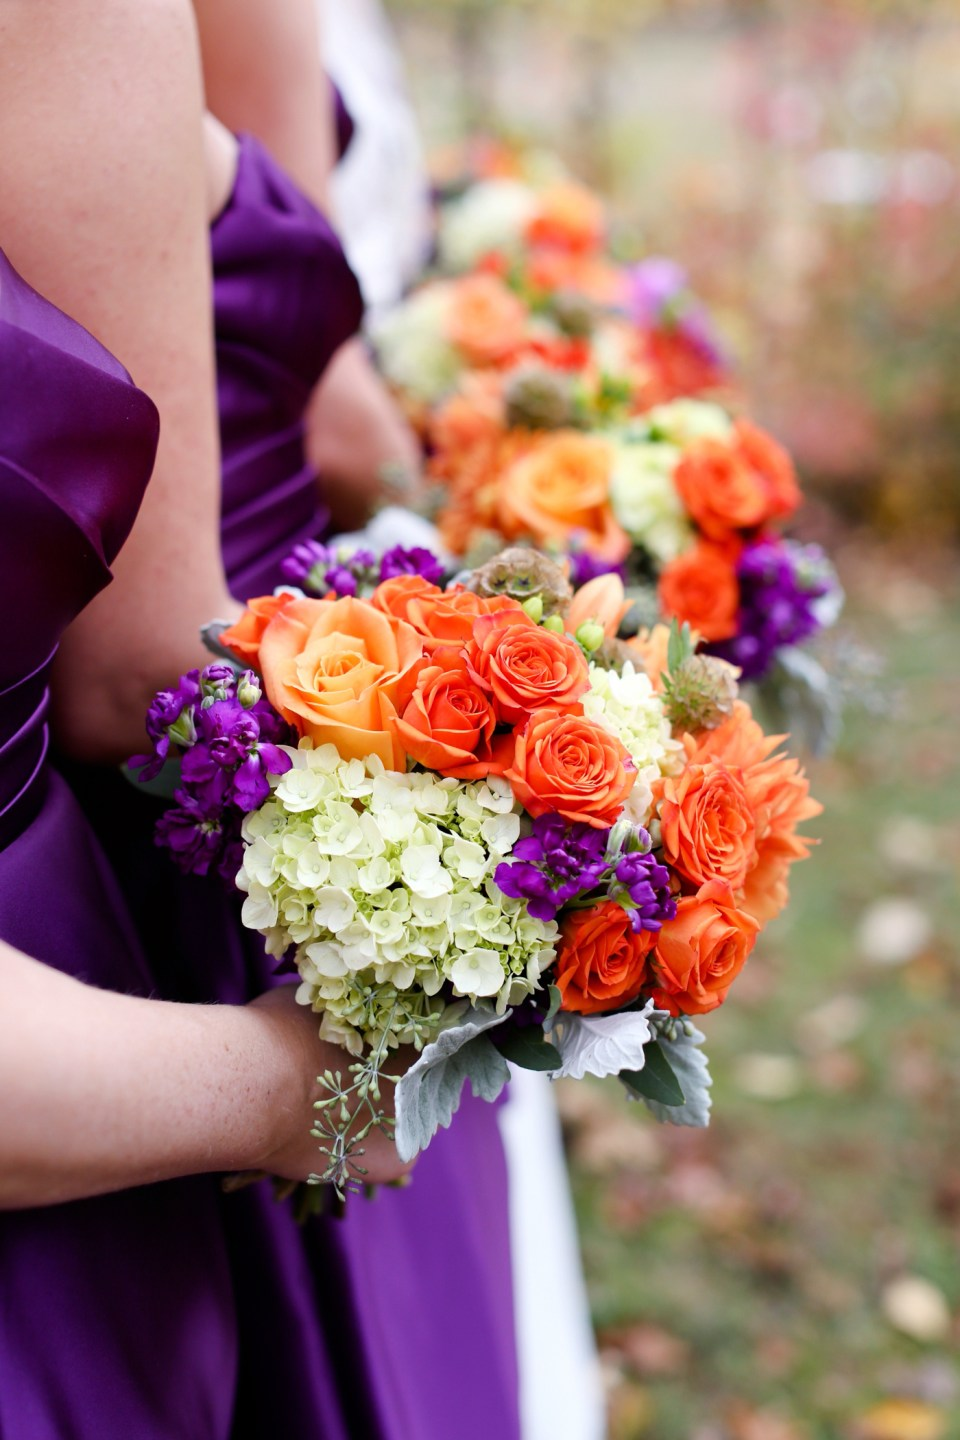 Fall-Wedding-Bouquet-Inspiration-Flowers-Bridal-Bridesmaids402